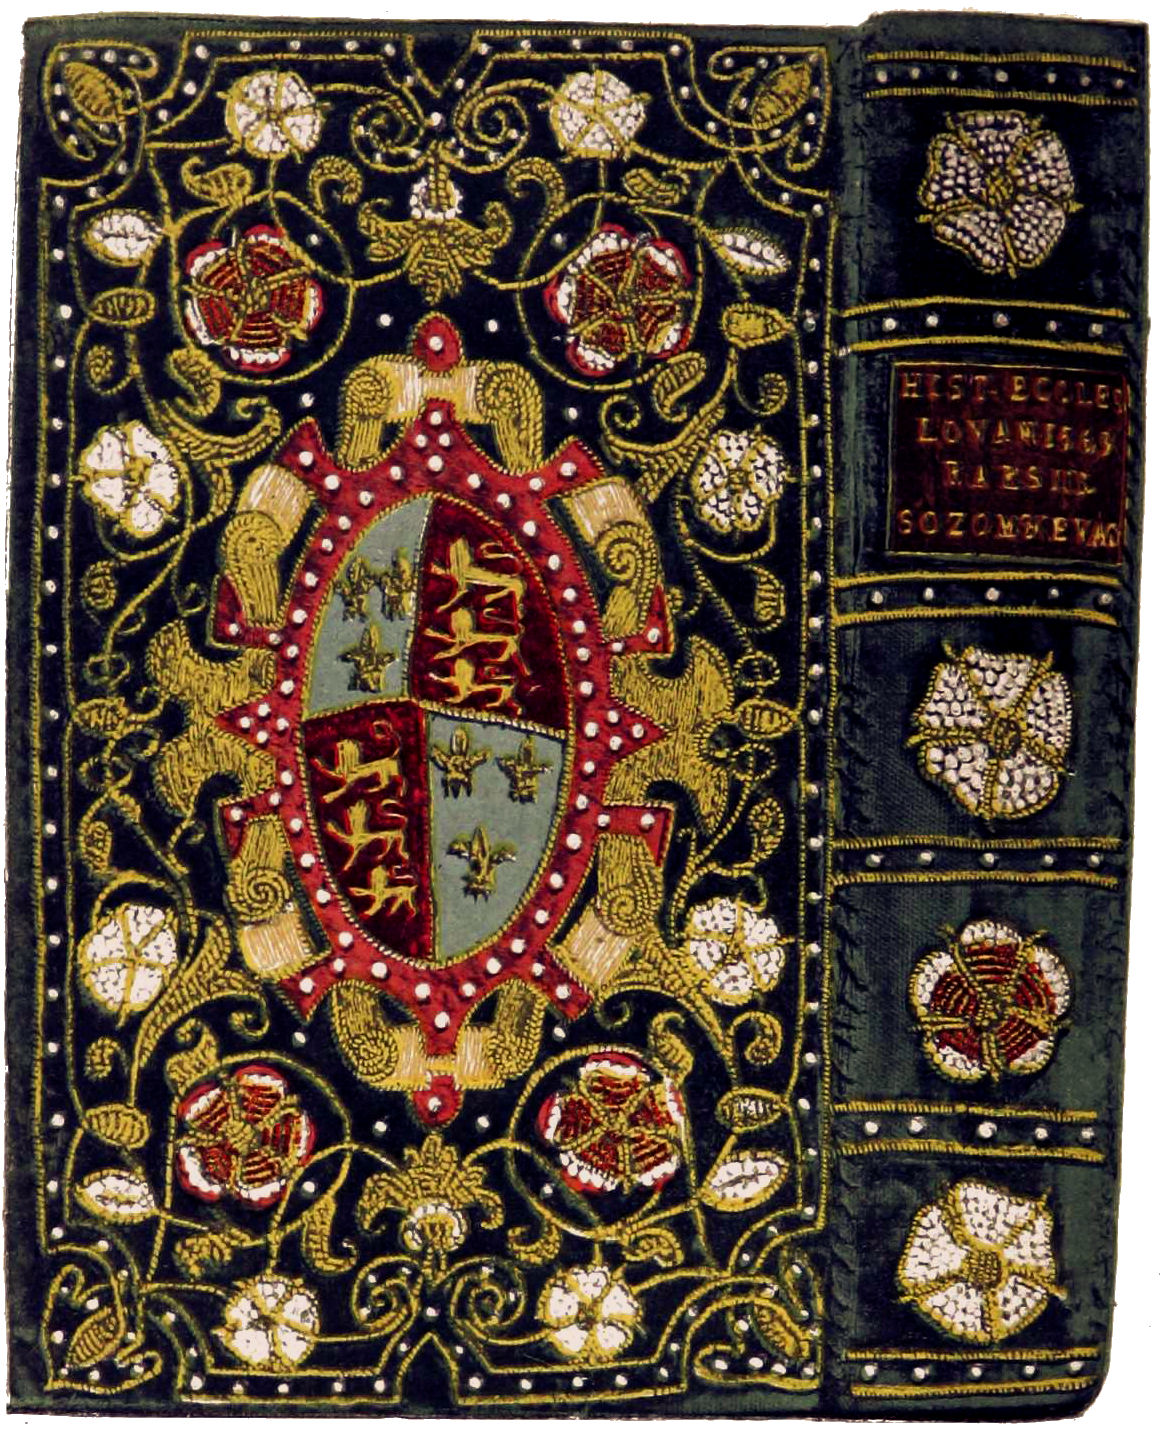 Old Chinese Book Cover ~ File embroidered bookbinding england th century g